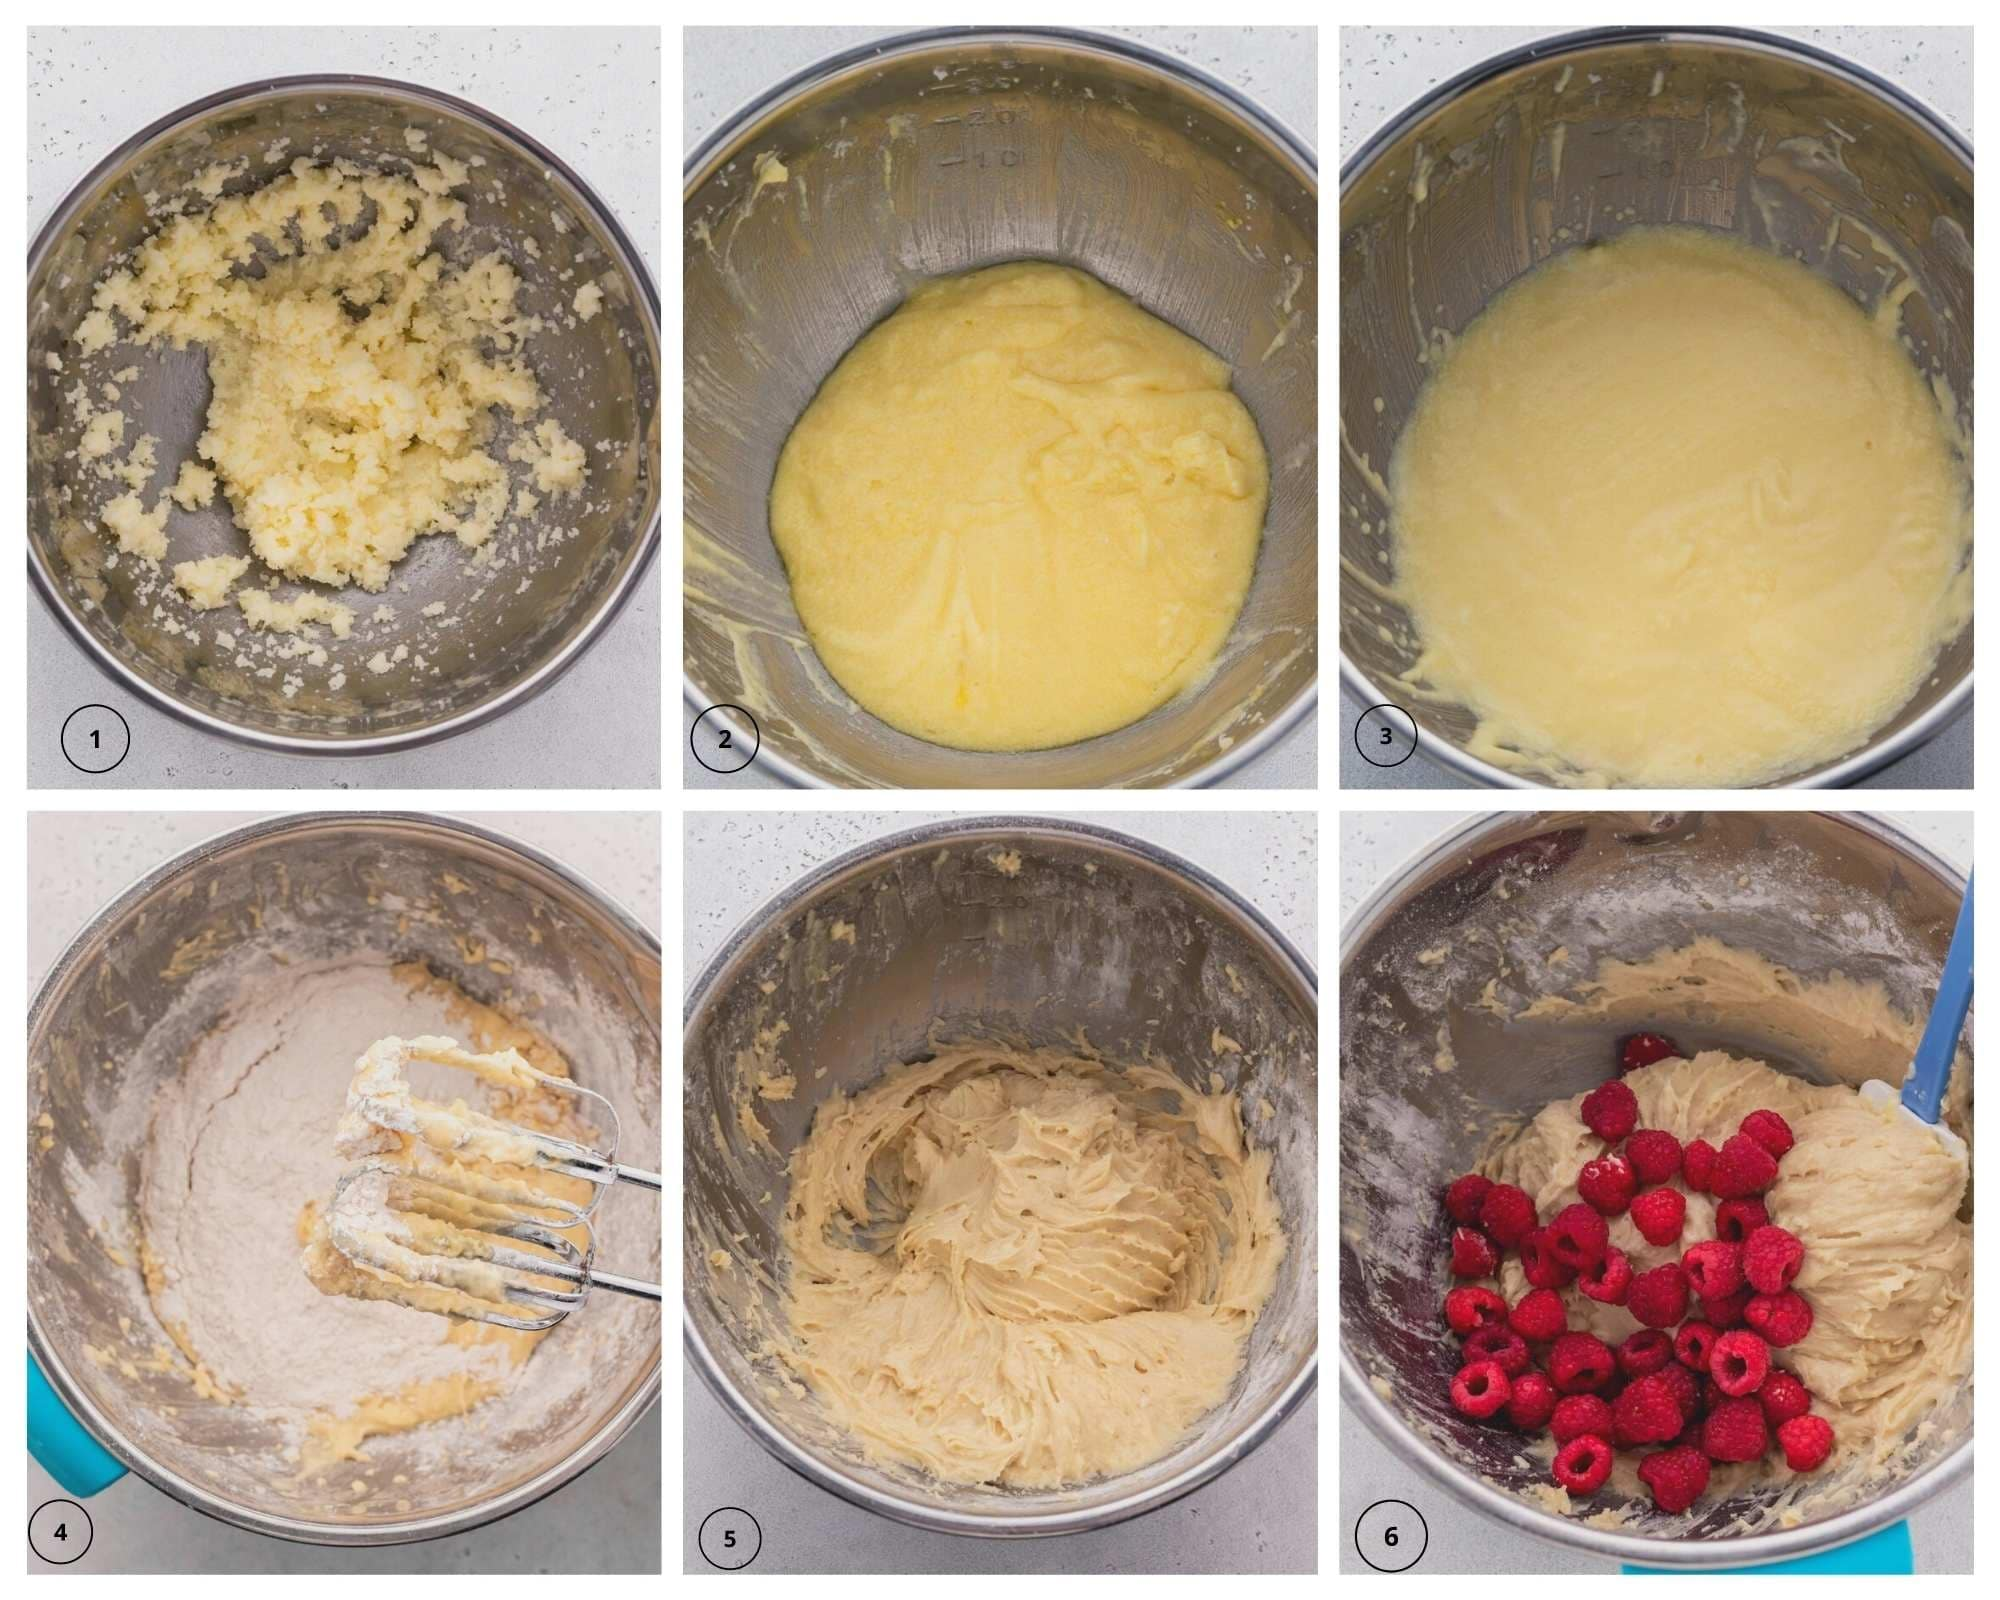 Making the loaf batter with raspberries step by step